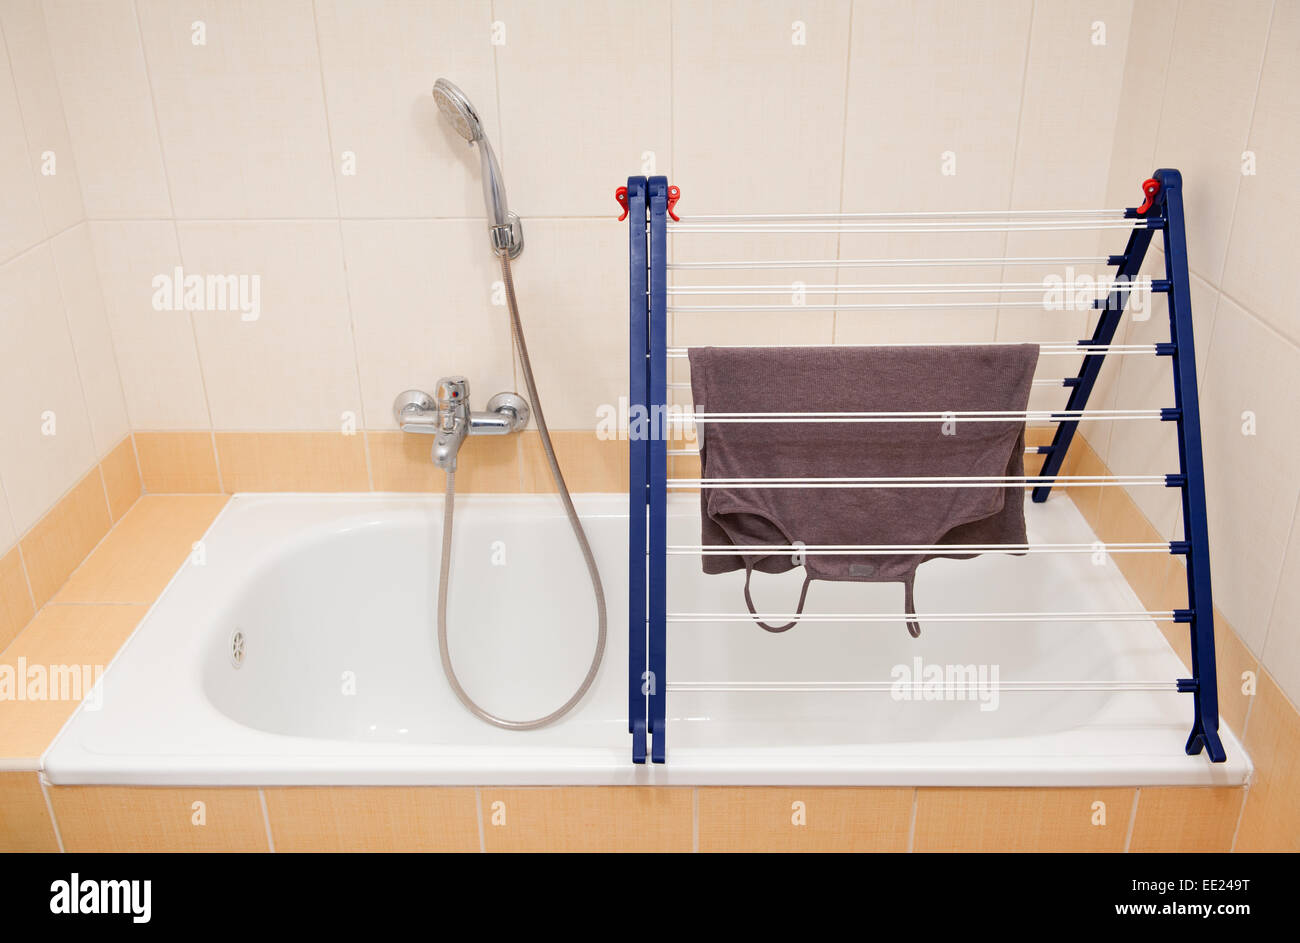 Foldable clothes horse drying rack over bath Stock Photo: 77493972 ...